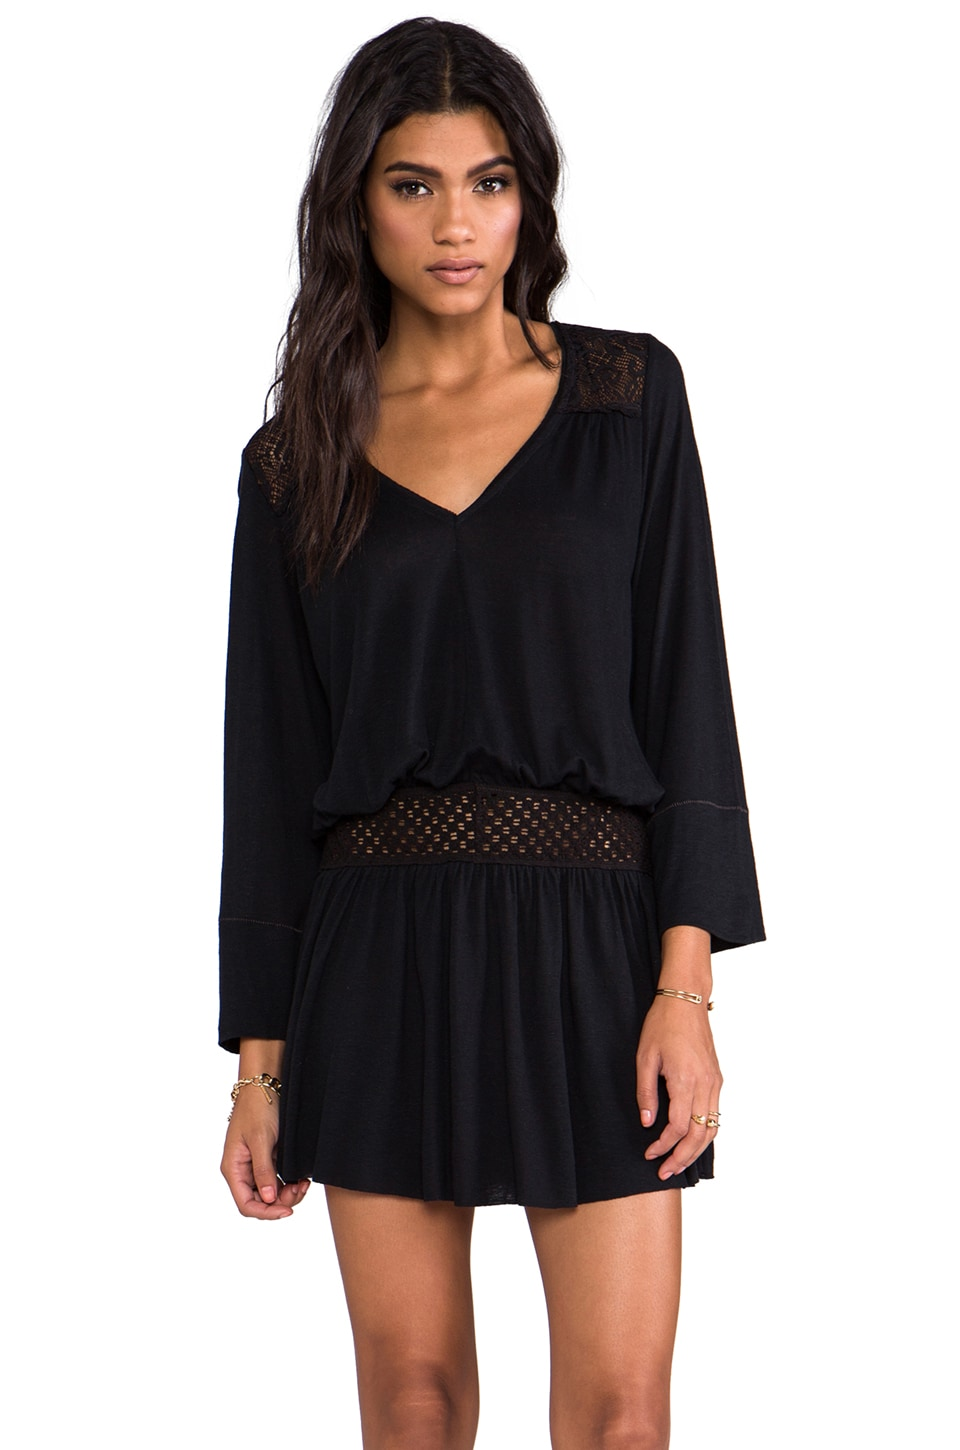 Free People Moonlight Romantic Tunic in Black